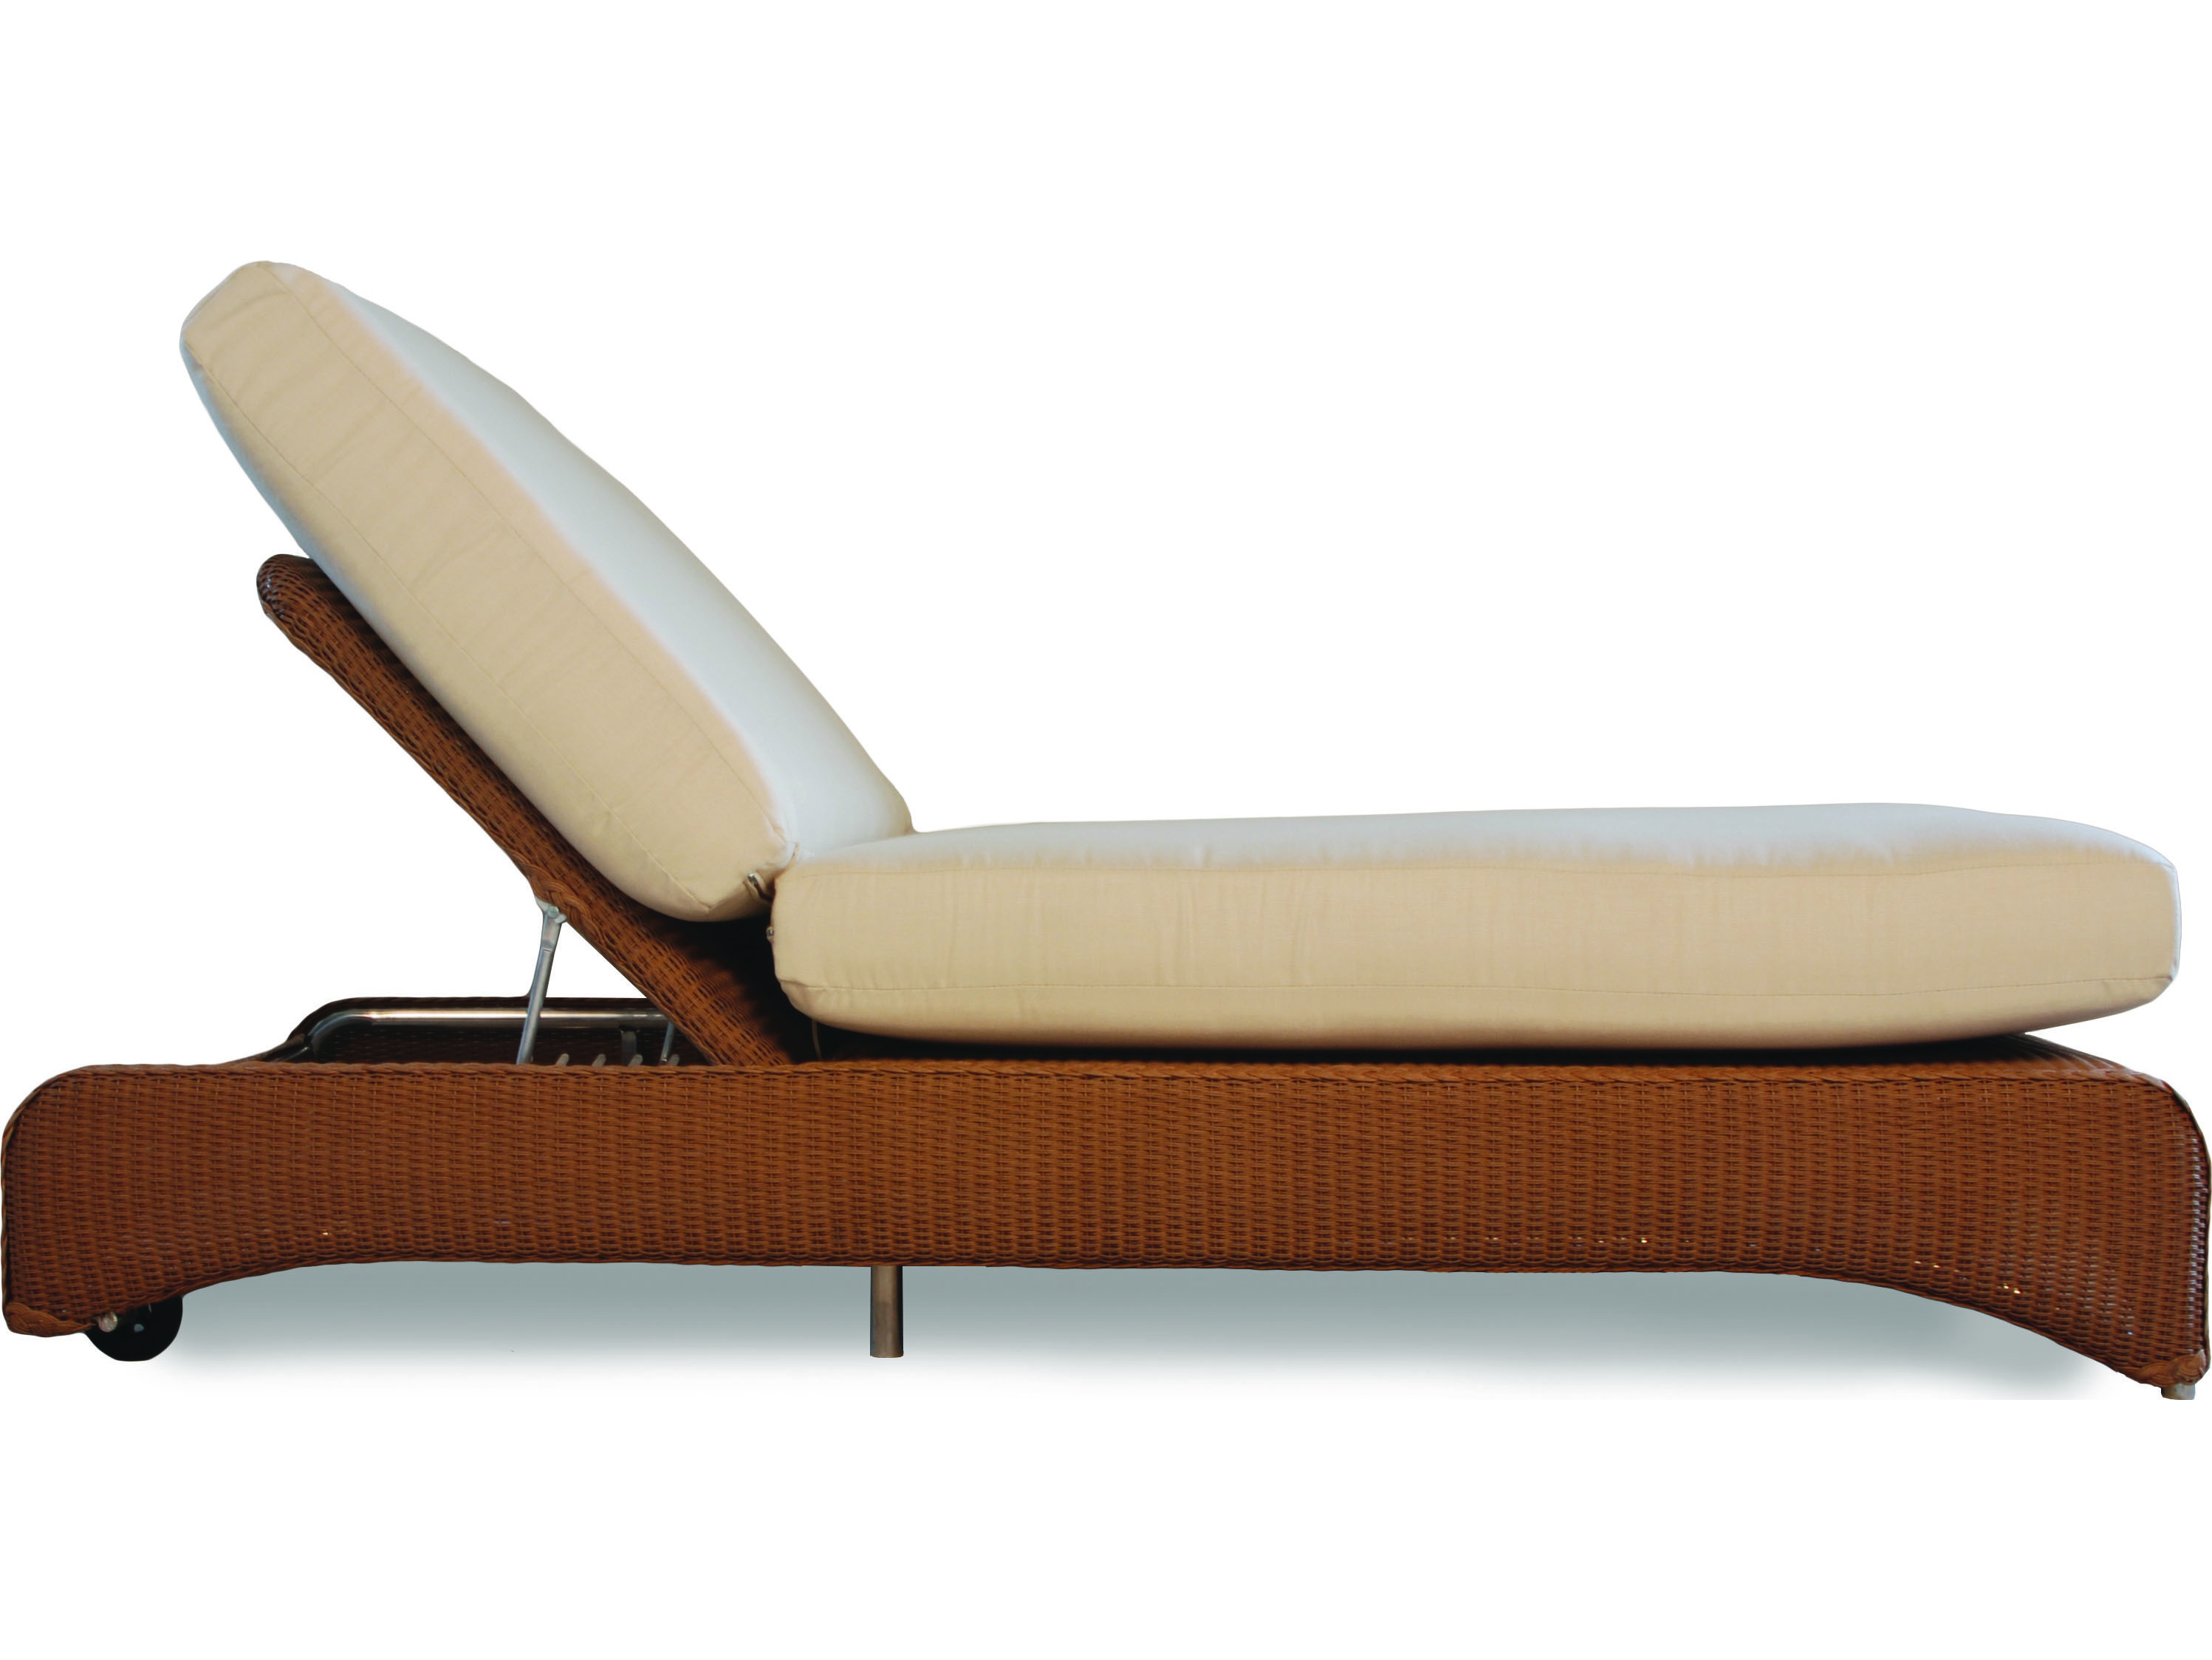 Lloyd flanders wicker double pool chaise 6040 for Chaise lounge accessories